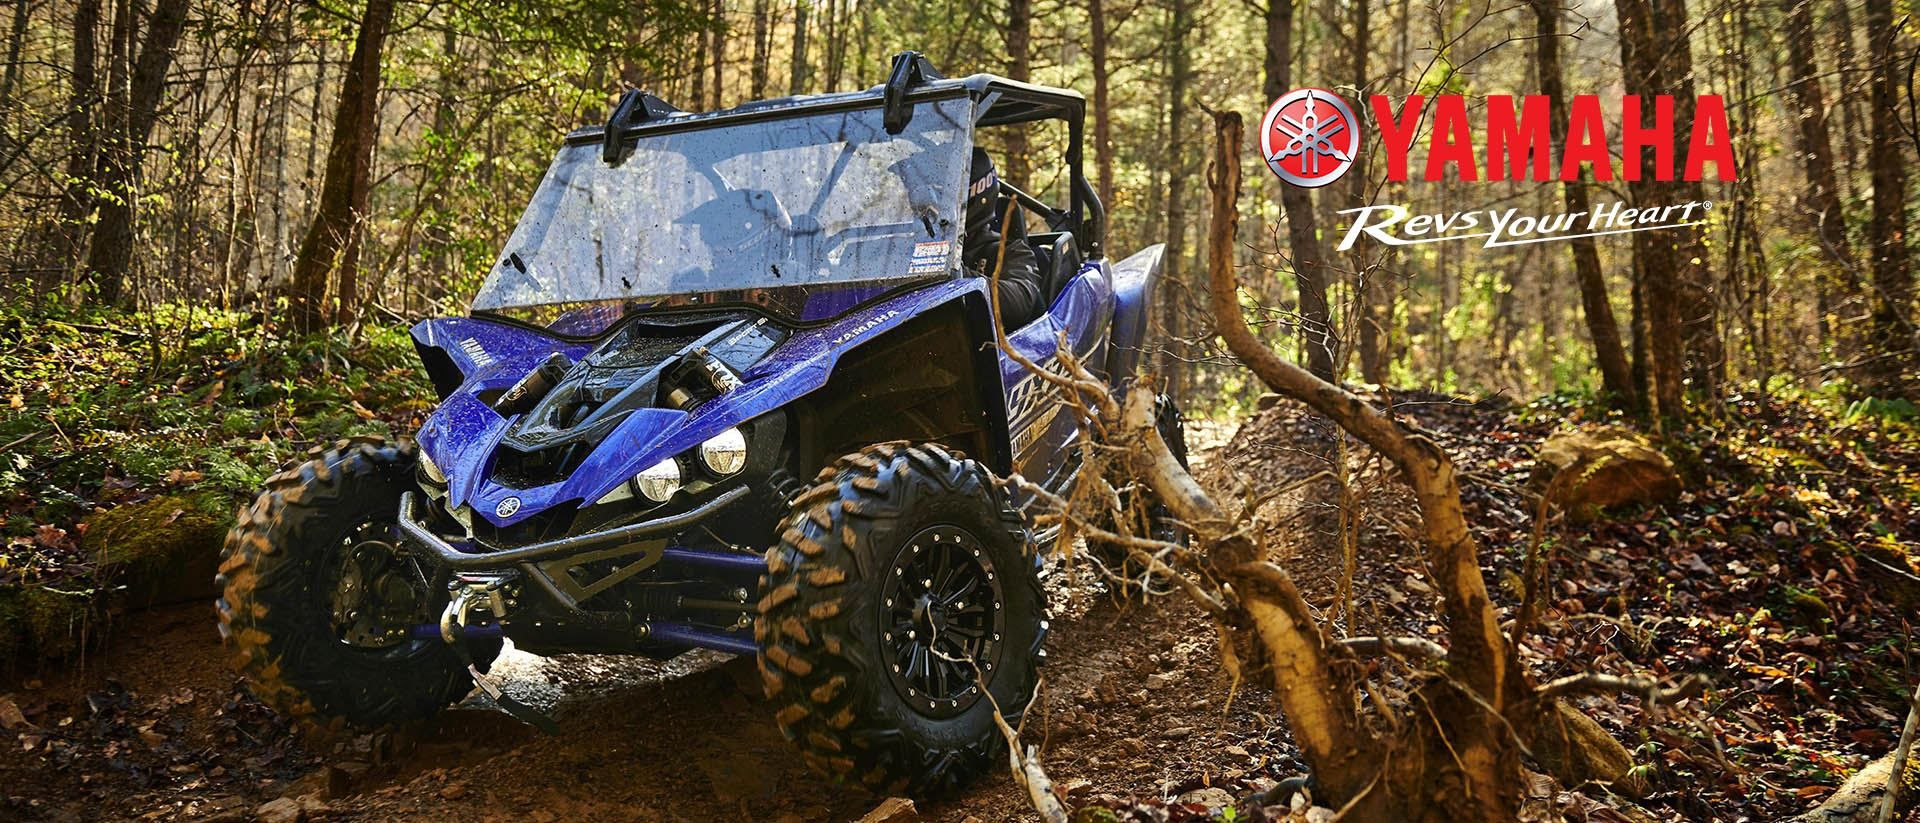 Yamaha Utility Vehicles for sale at Middletown Cycle in Franklin, OH